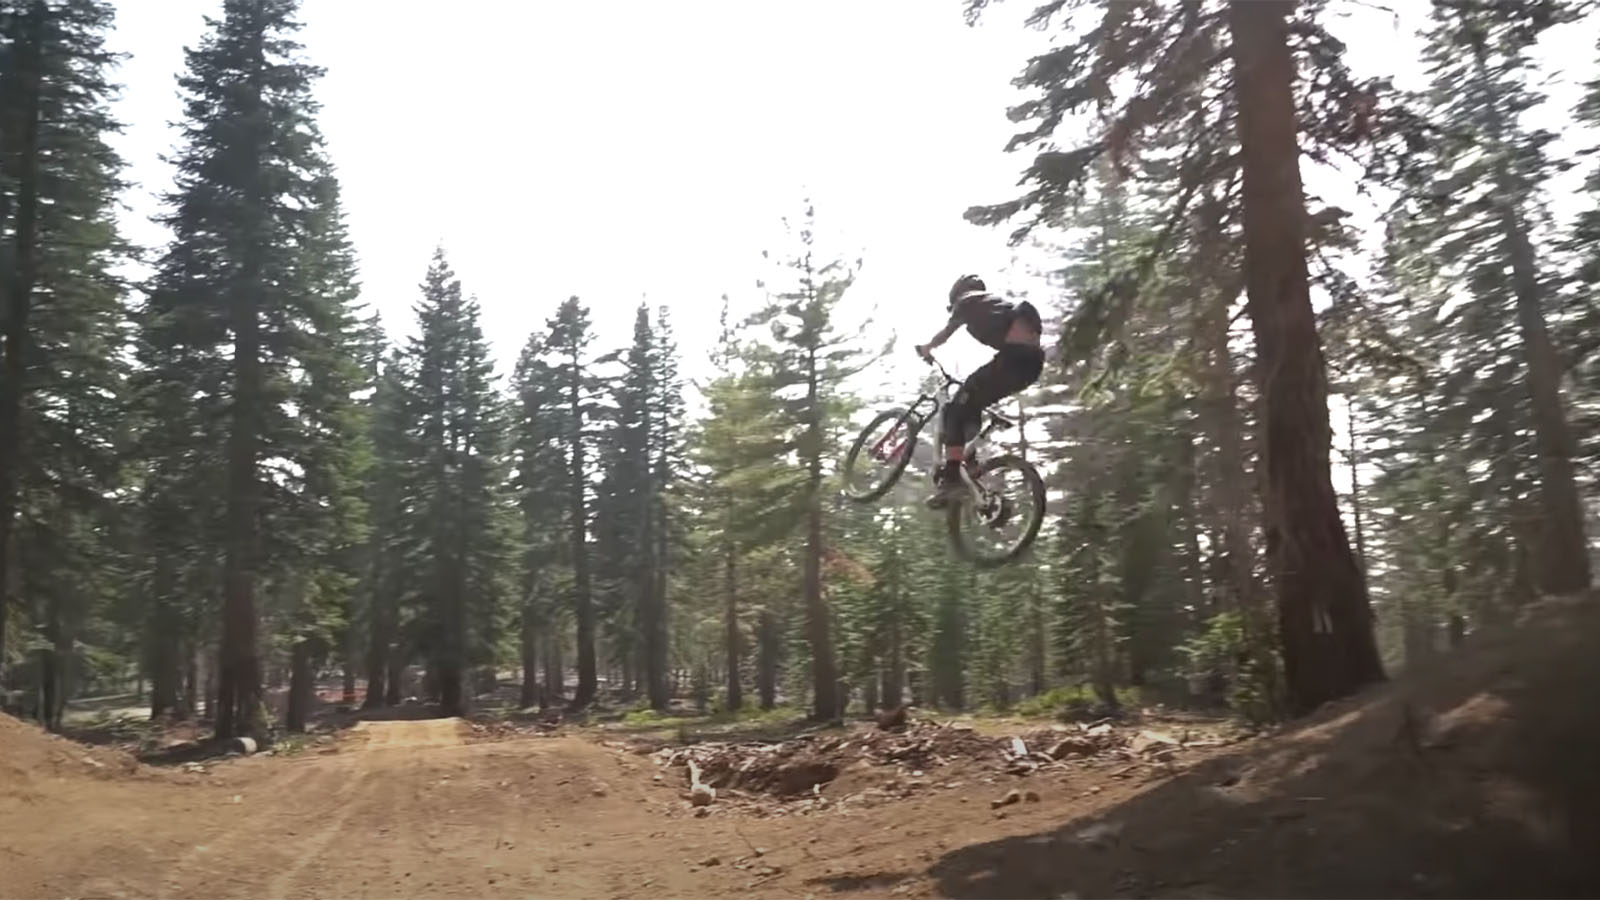 Science and Sending - Cam Zink Tries 29/27.5 Mixed Wheels and Shares the Results